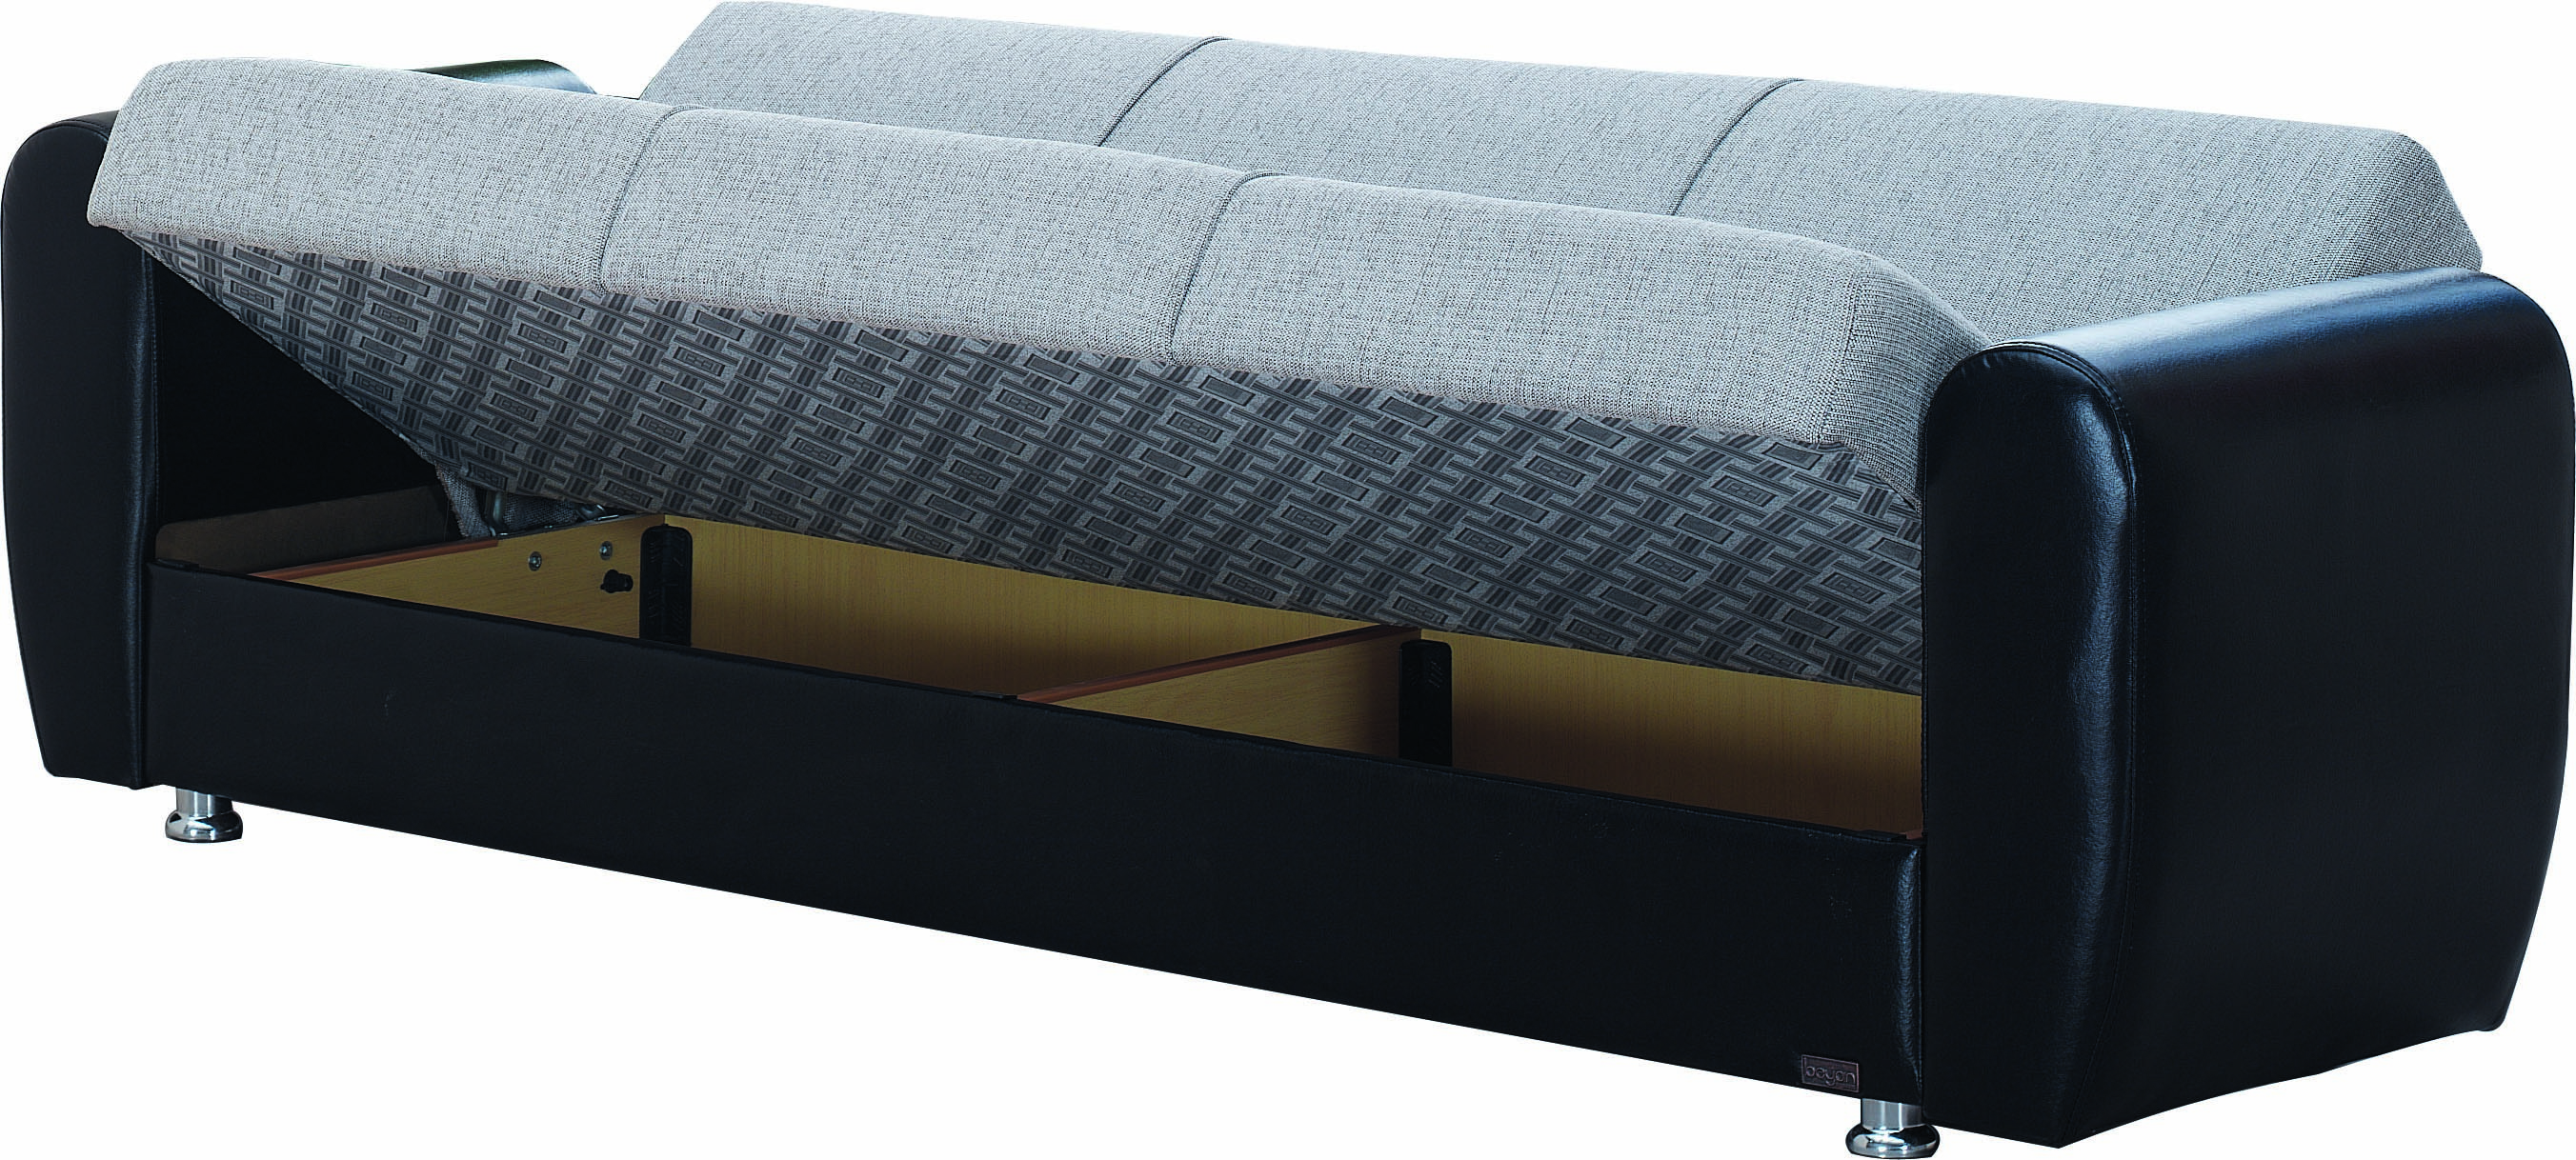 Houston sofa bed by empire furniture usa for Sofa bed name